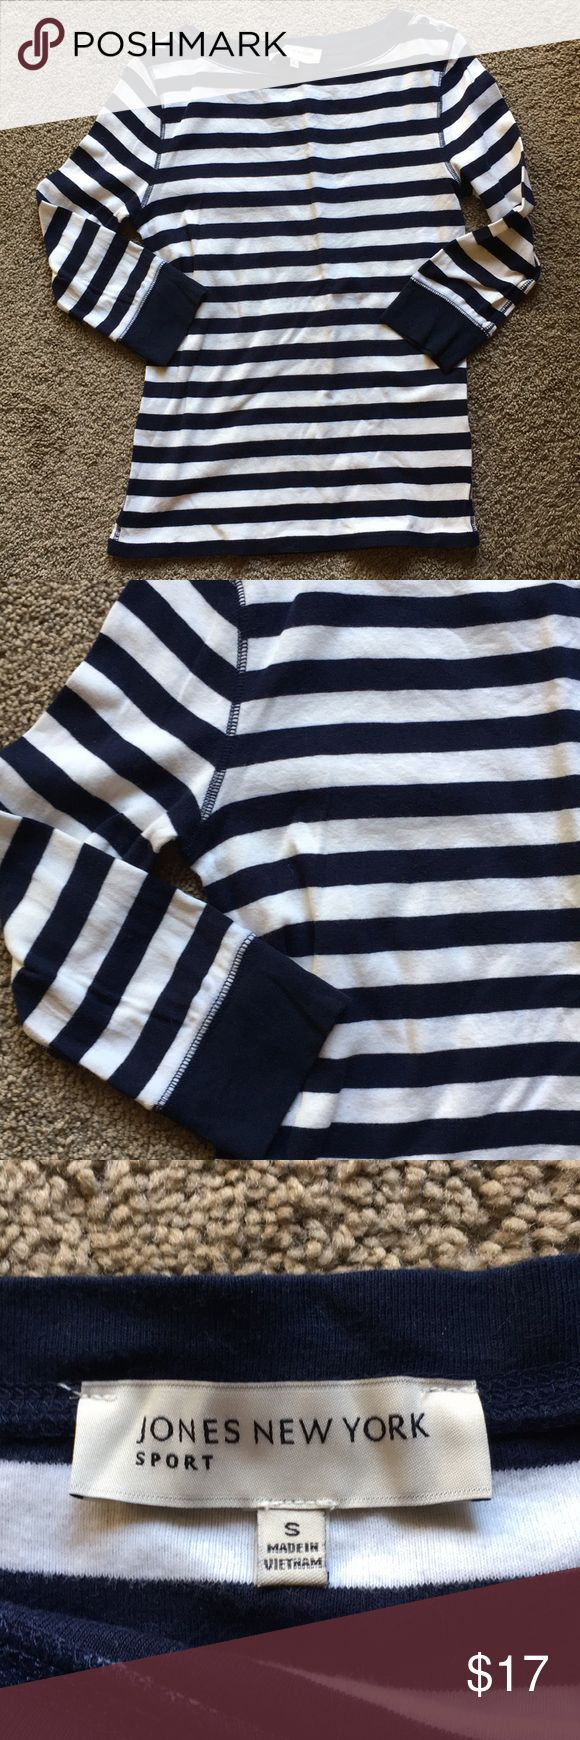 Jones New York sport striped long sleeve top Jones New York sports white and navy blue striped 3/4 sleeve top with cute button detail. Size S Jones New York Tops Tees - Long Sleeve